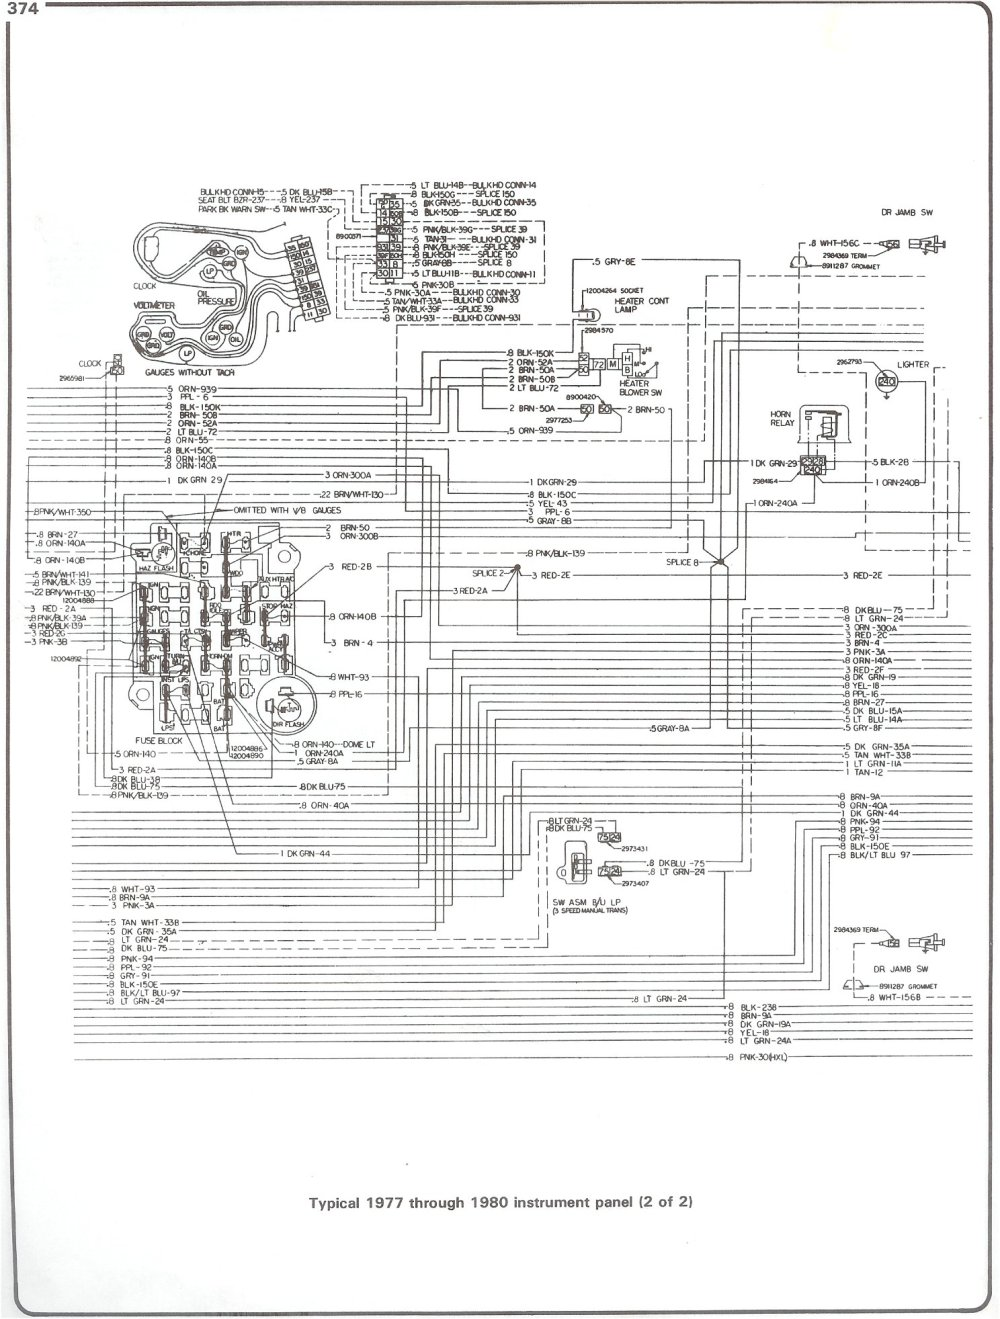 medium resolution of 73 chevy blazer wiring diagram simple wiring schema gm hei module wiring complete 73 87 wiring